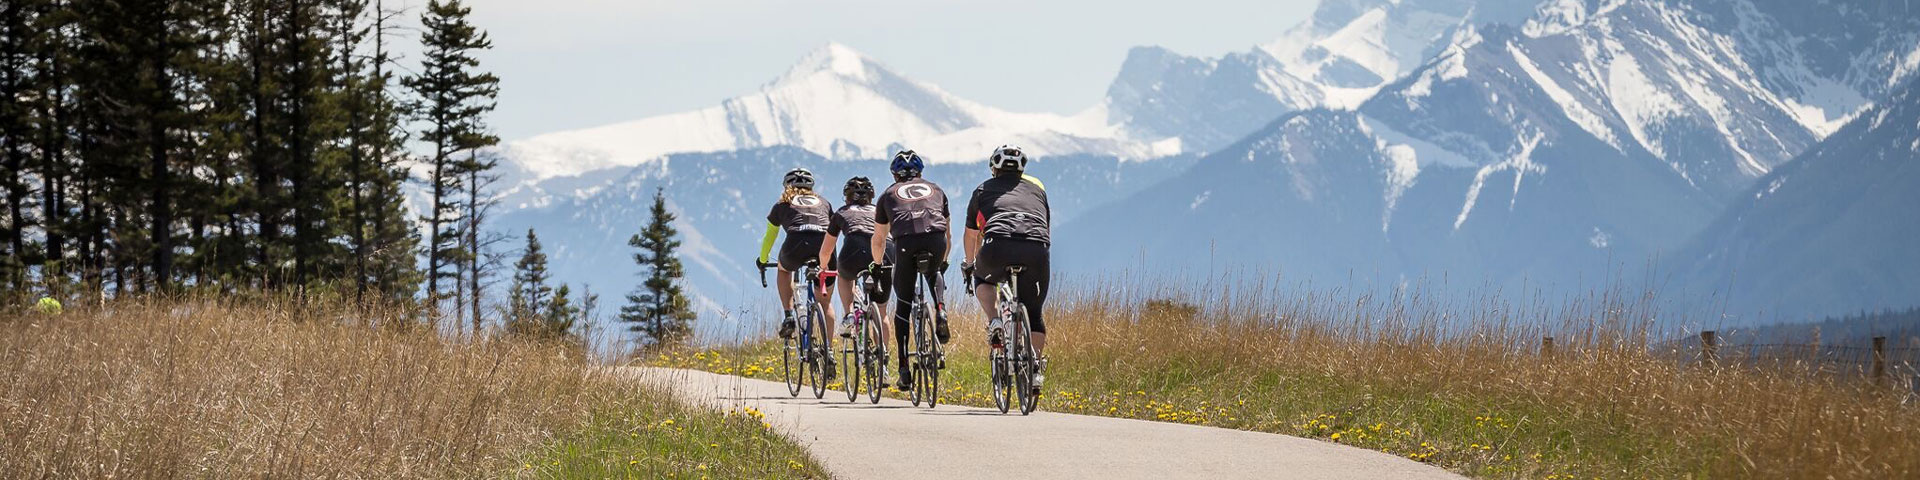 Bikers on cycling tour from Jasper to Banff, Alberta